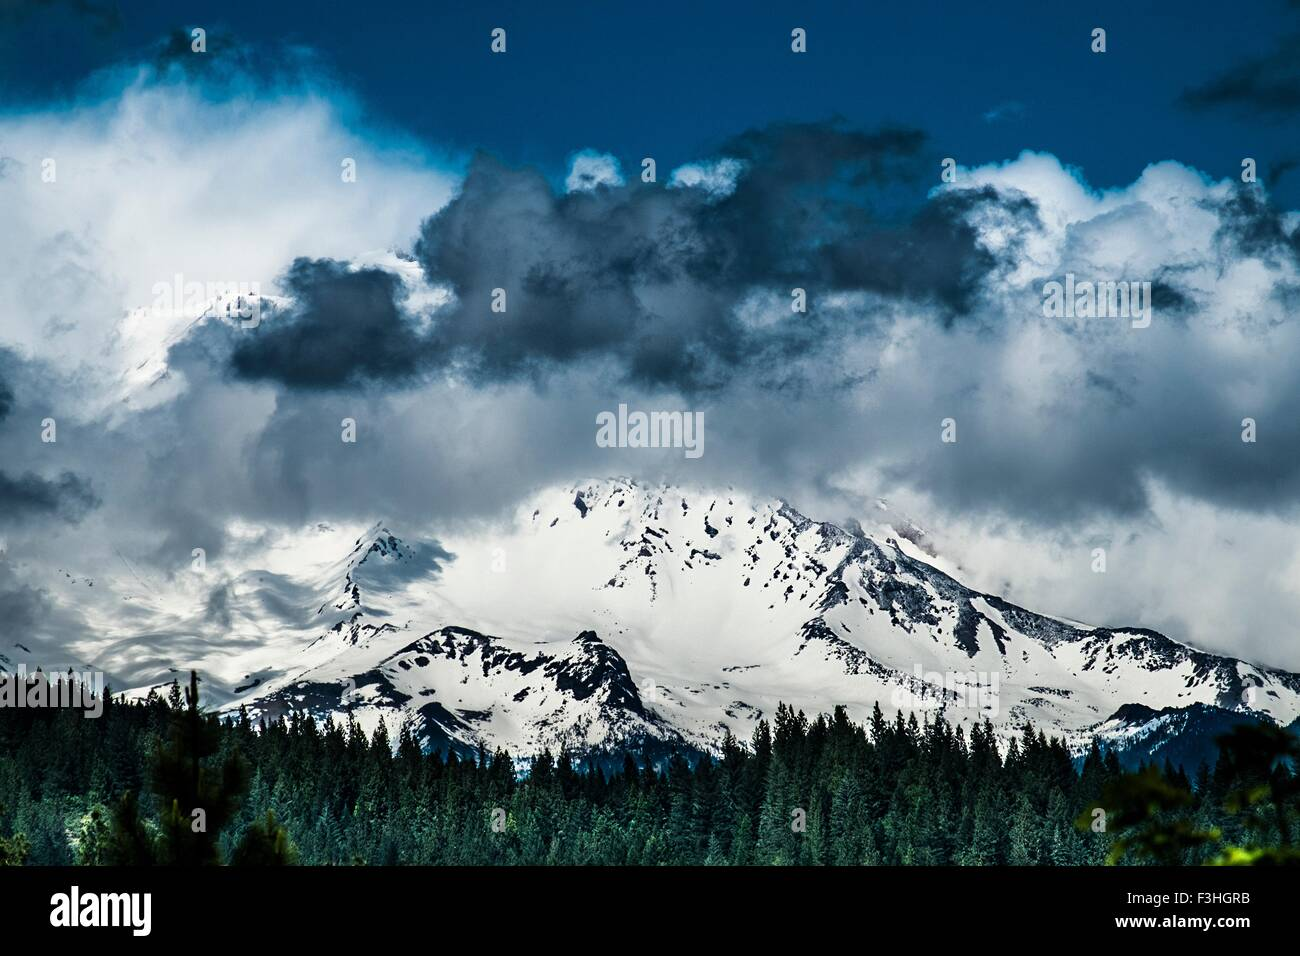 Mount Shasta, California, USA - Stock Image